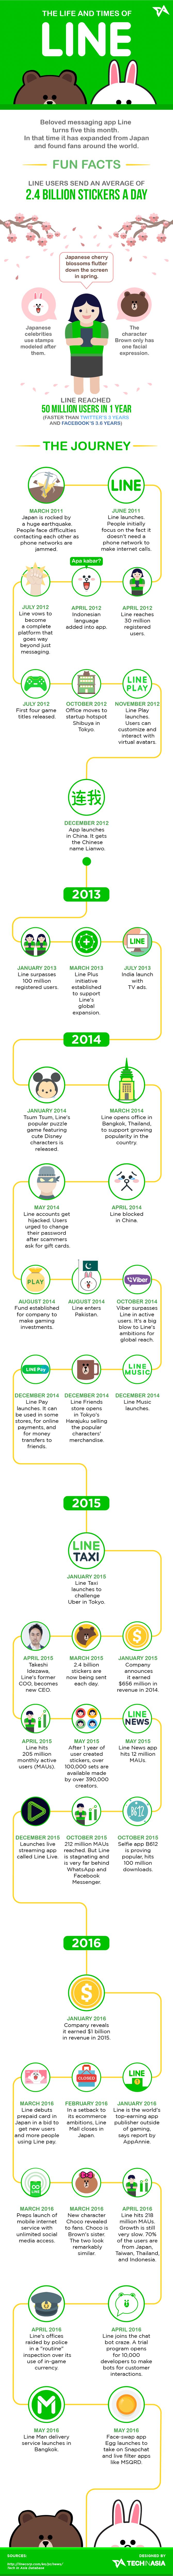 line-journey-and-timeline-infographic